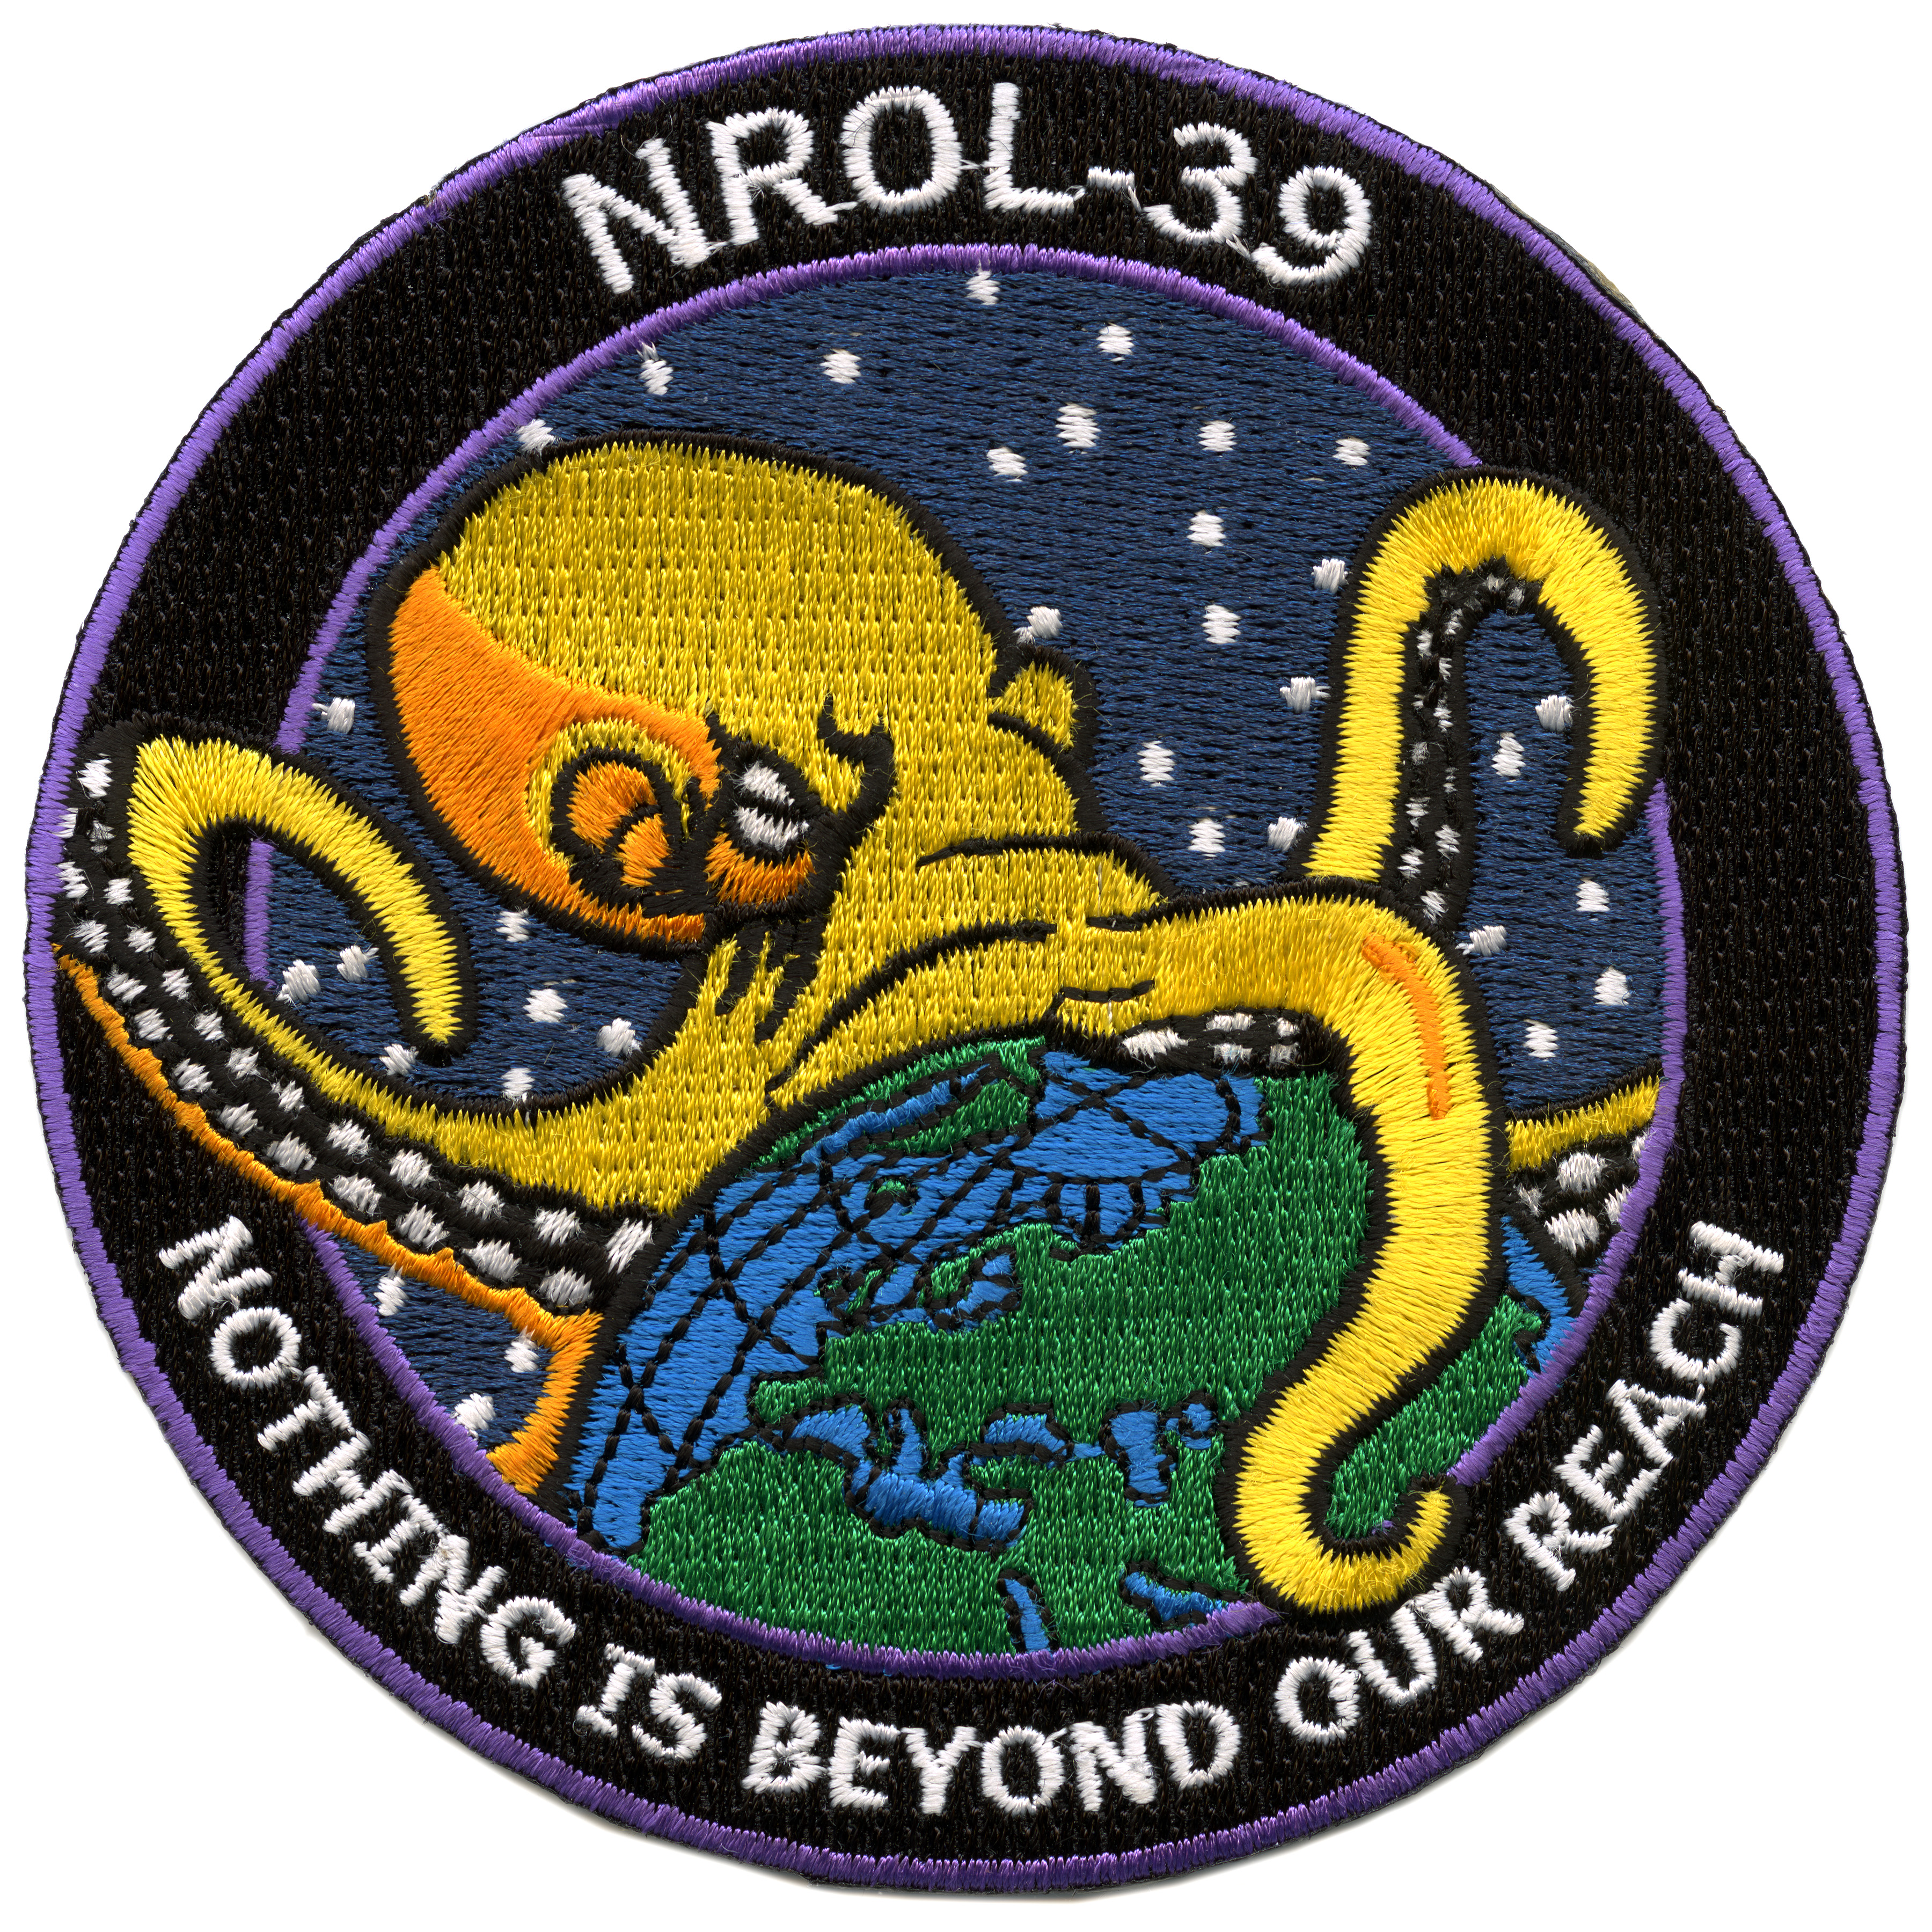 http://upload.wikimedia.org/wikipedia/commons/5/51/Nrol-39.jpg